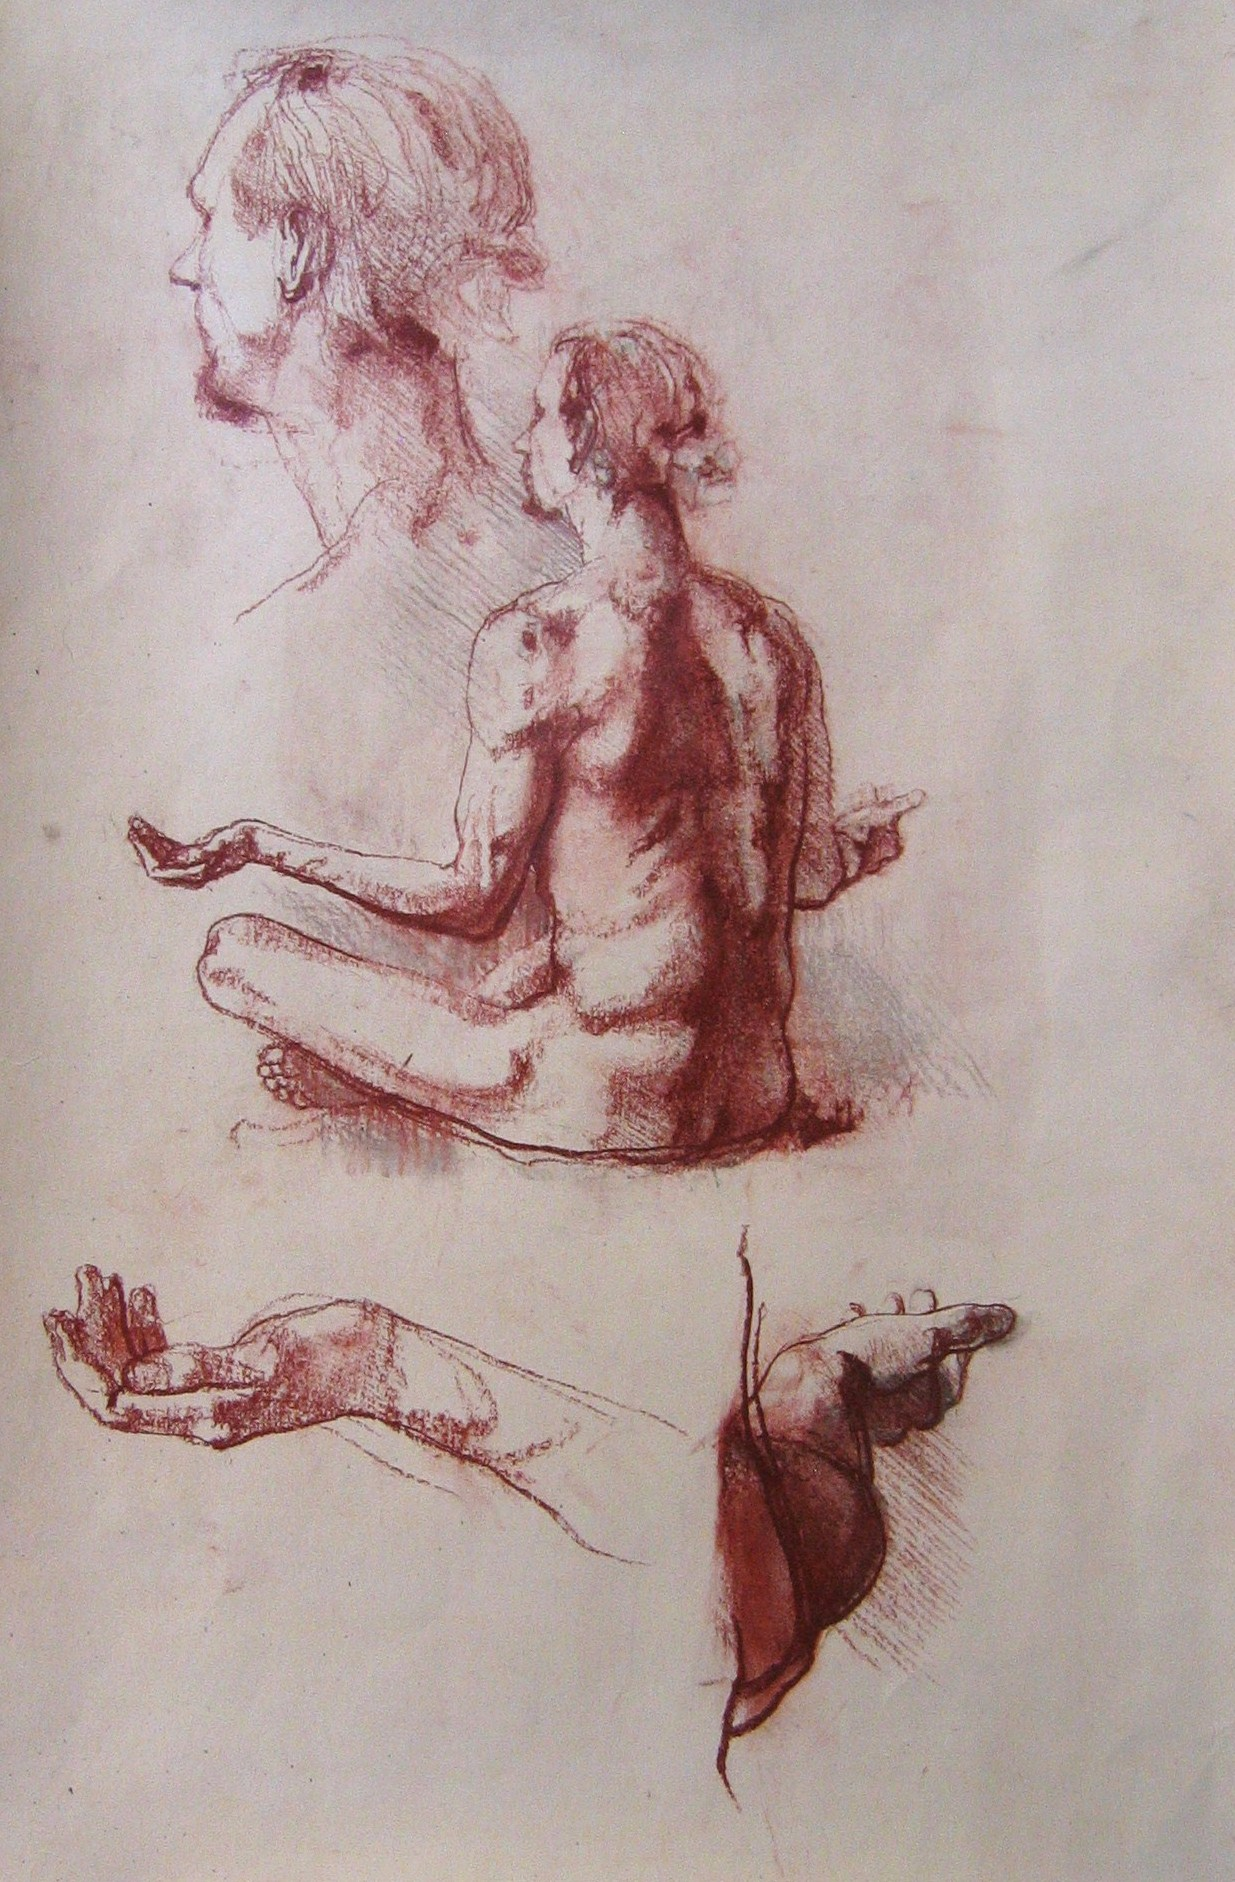 H09-Fresco-Hospice-Seated-Male-Figure-Study.jpg